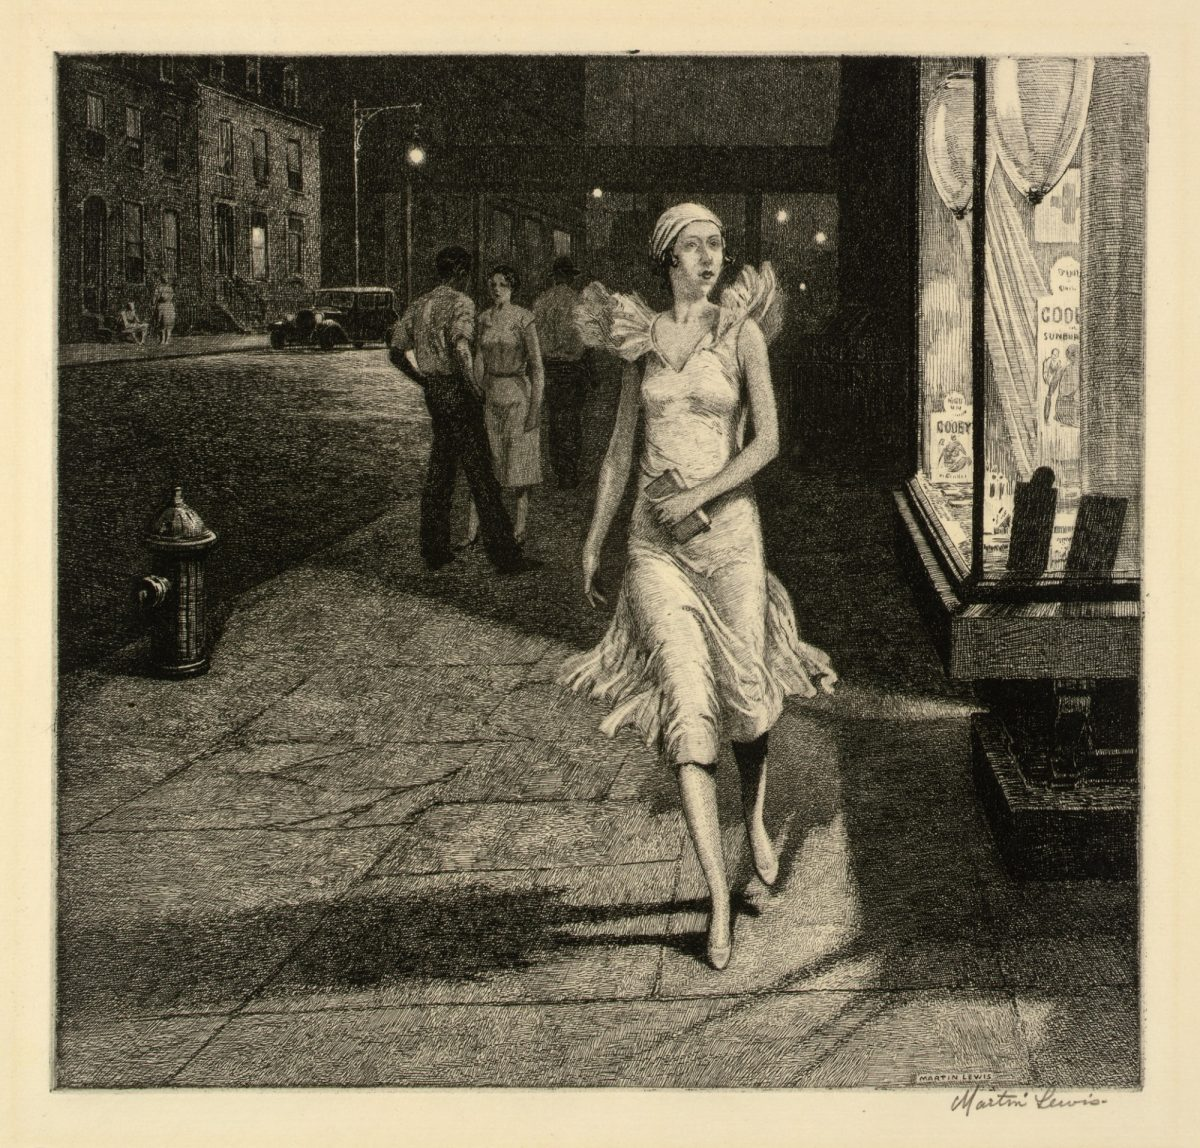 NIGHT IN NEW YORK Martin Lewis 1926 etching on paper